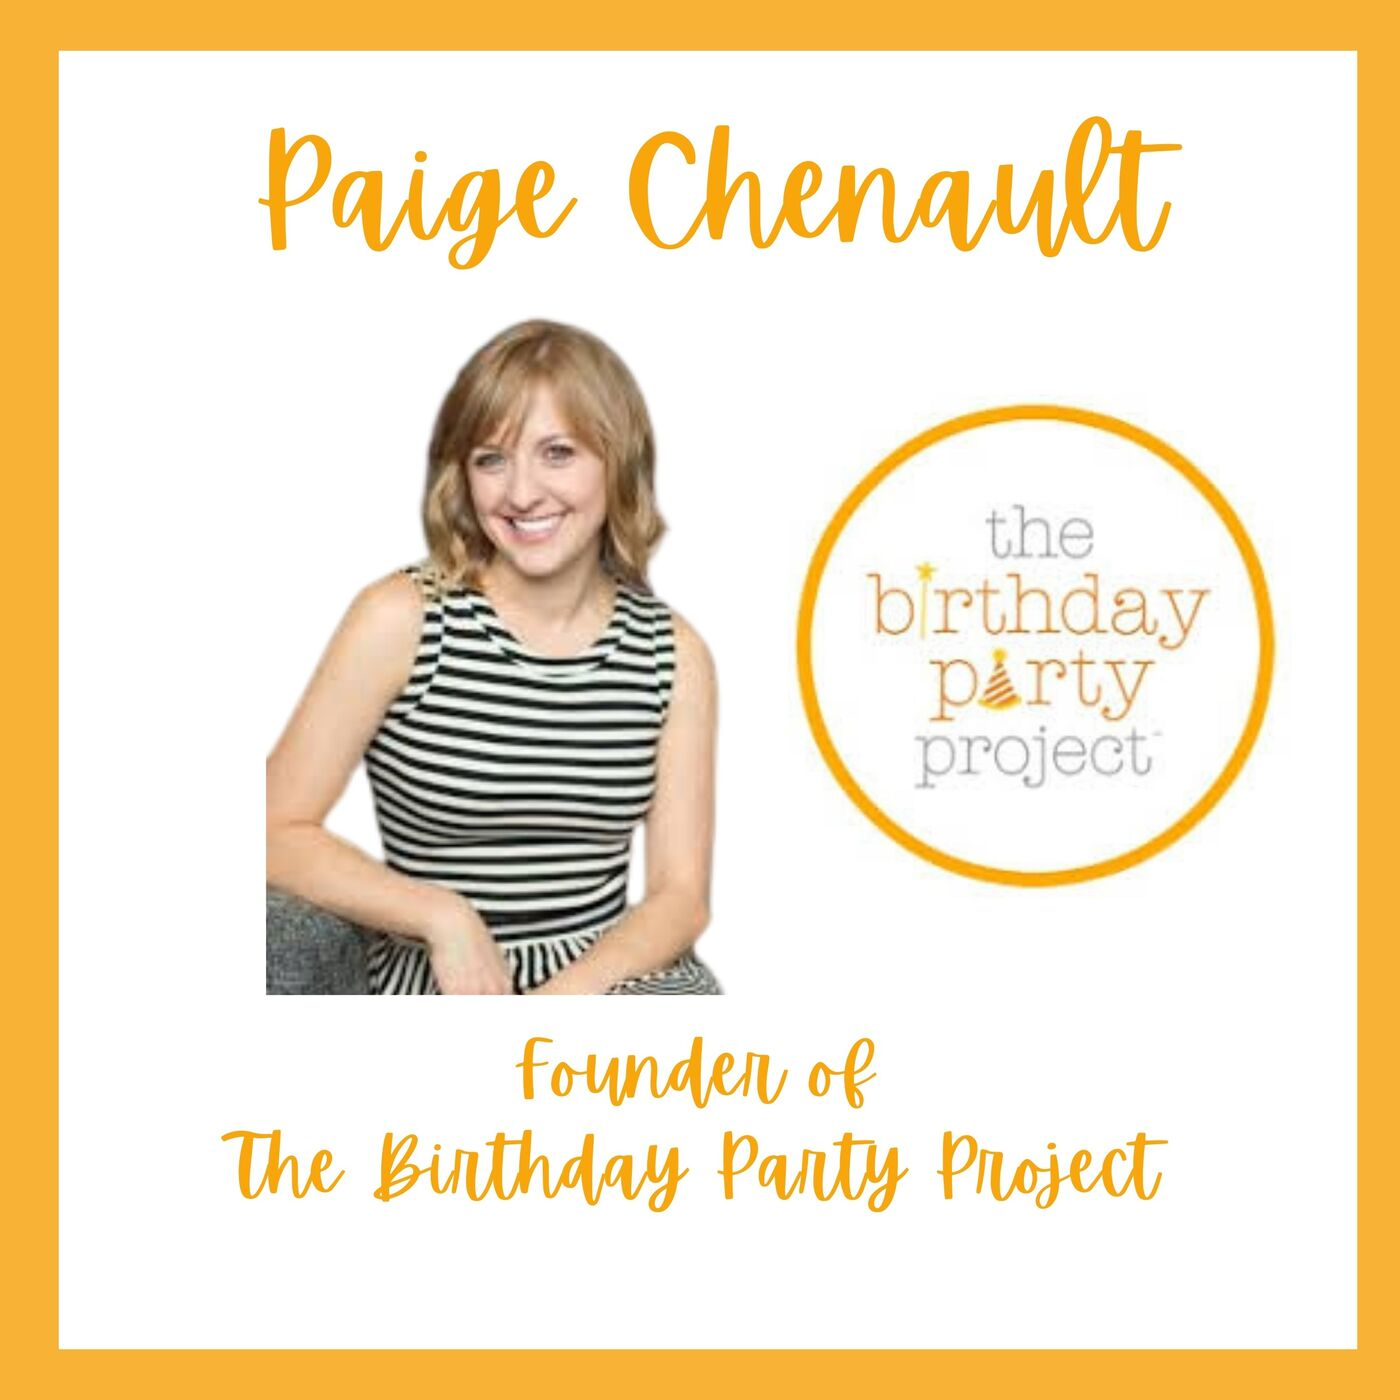 A Colorful Conversation with Paige Chenault